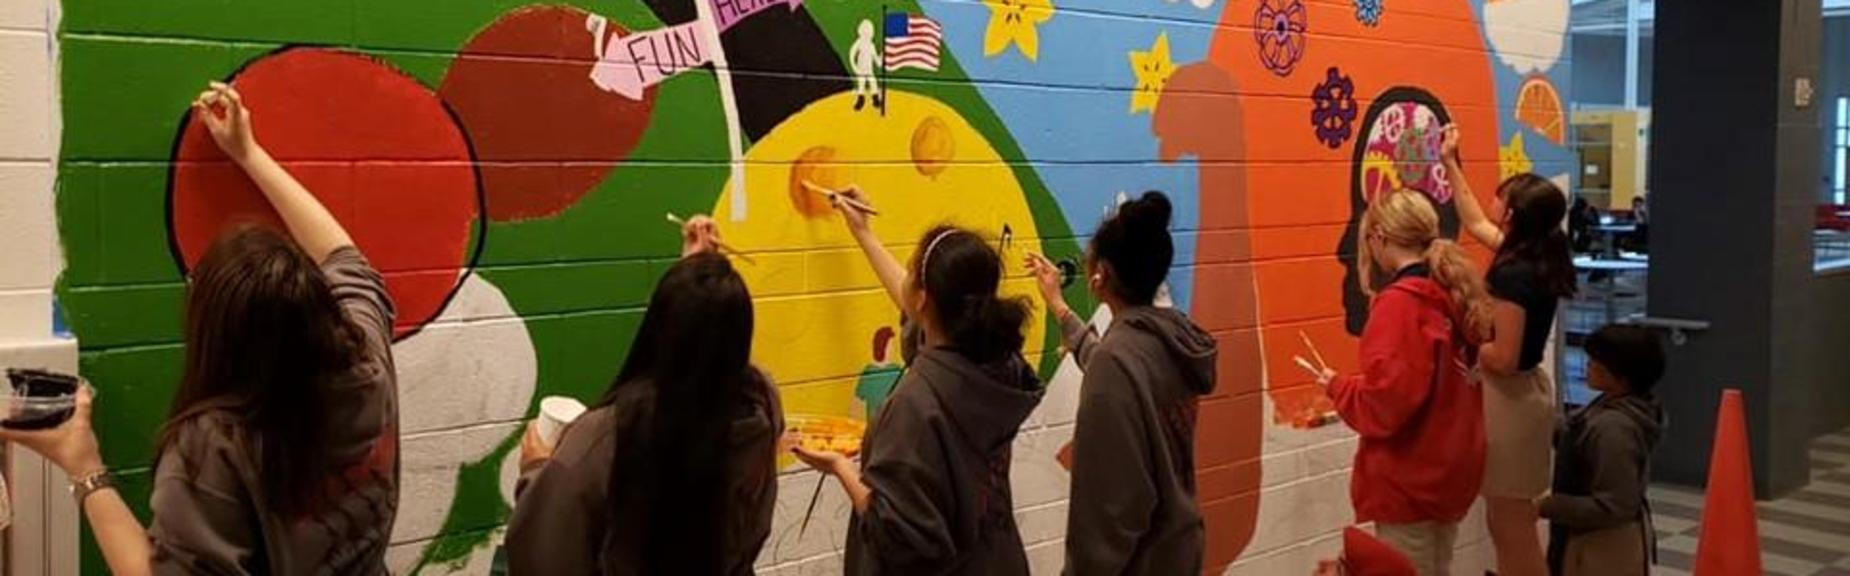 Several students painting a mural on a cinder block wall.